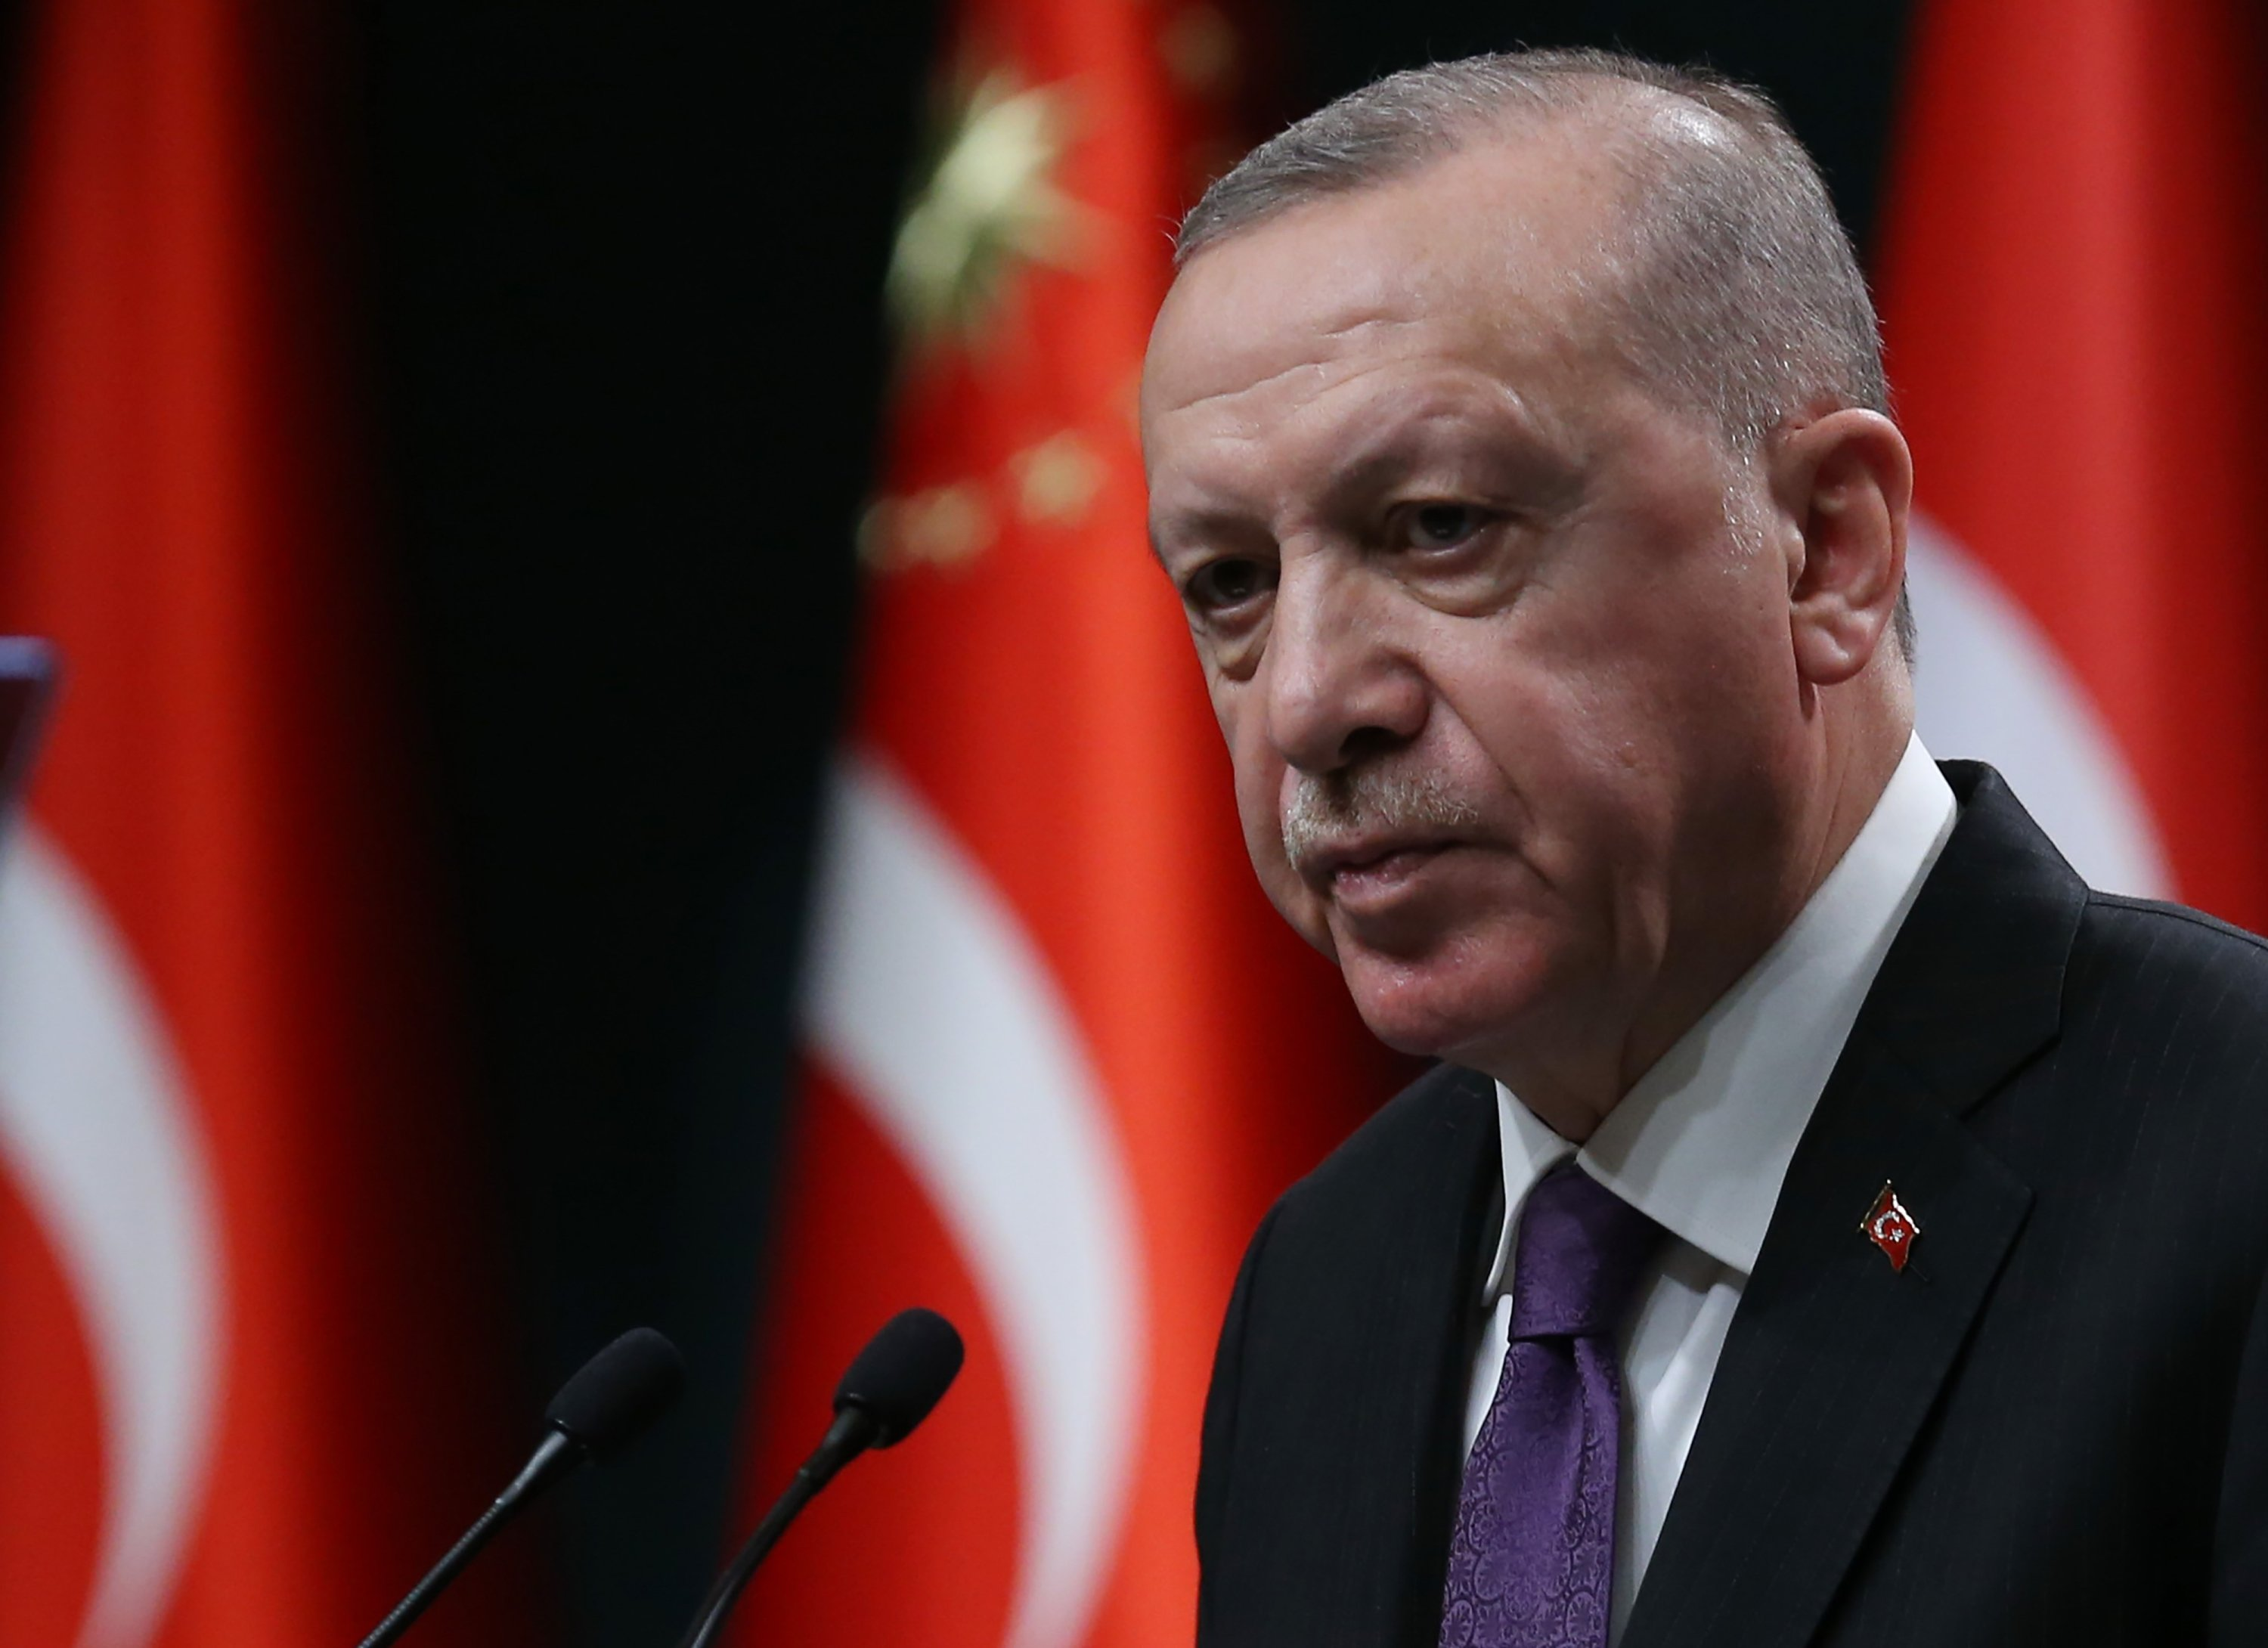 President Recep Tayyip Erdoğan makes a speech as he holds a press conference following the Cabinet meeting at the Presidential Complex in Ankara, Turkey, Feb. 1, 2021. (AFP)